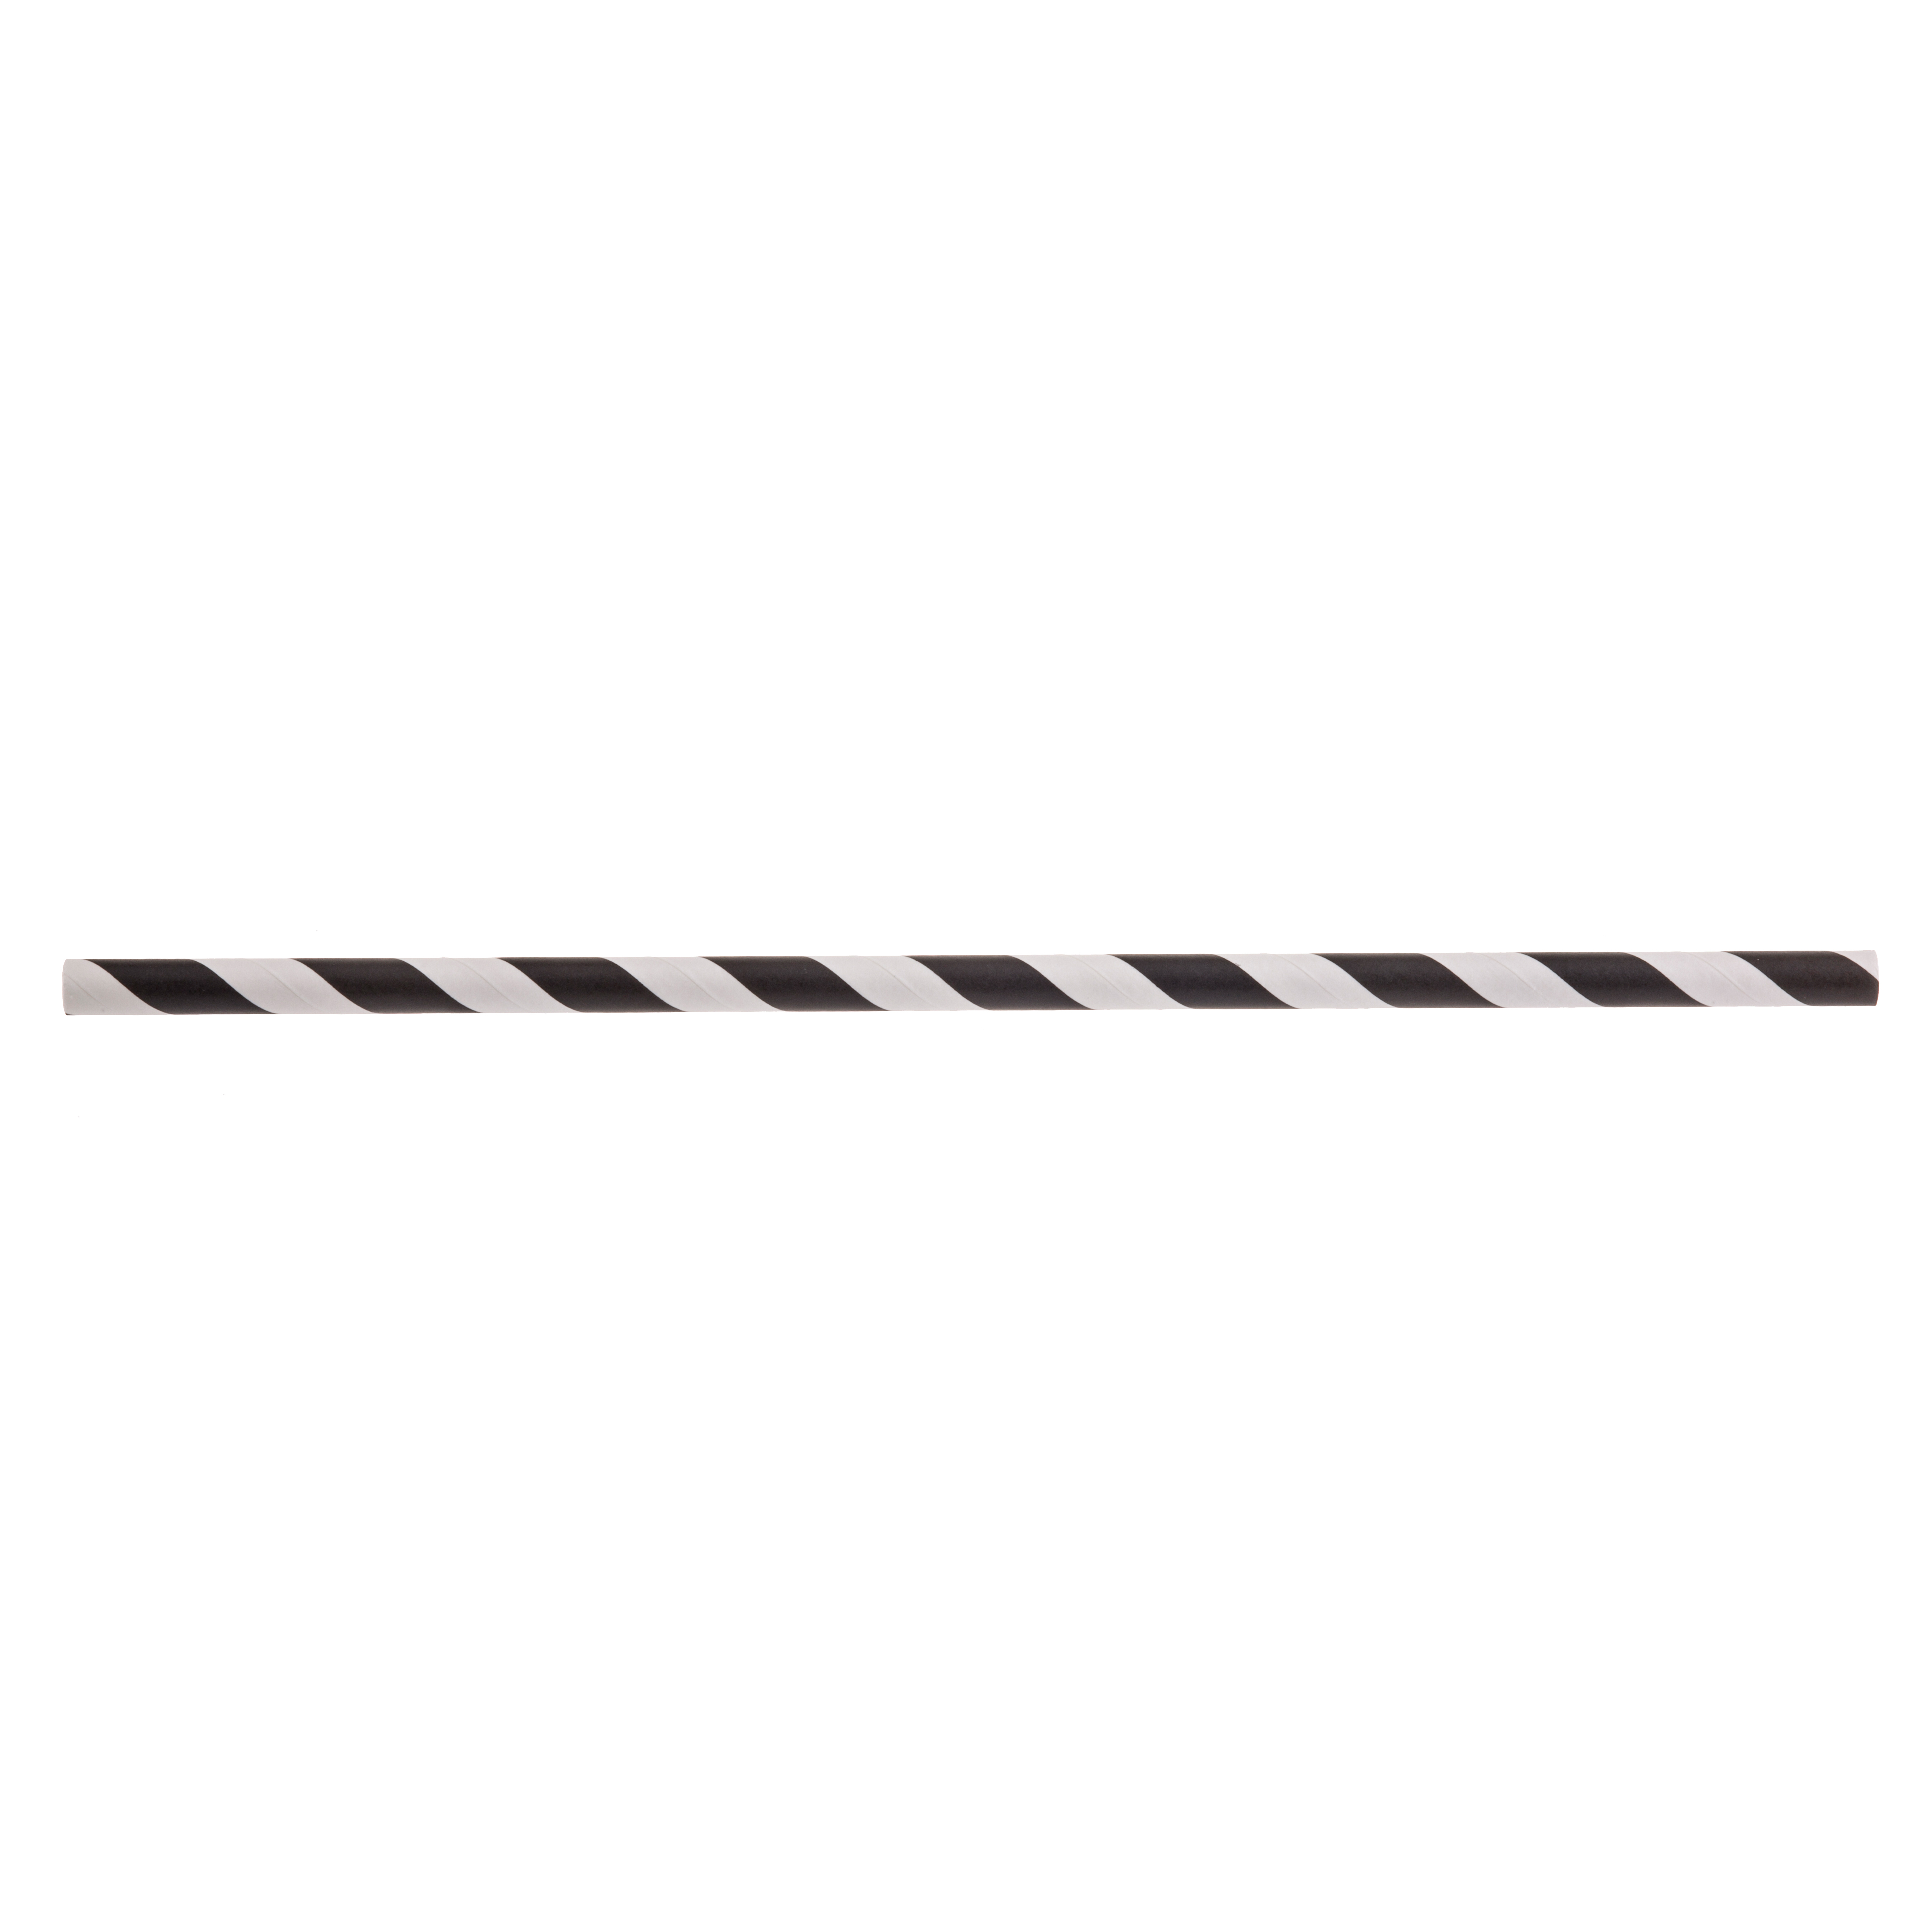 TableCraft Products 700112 straws